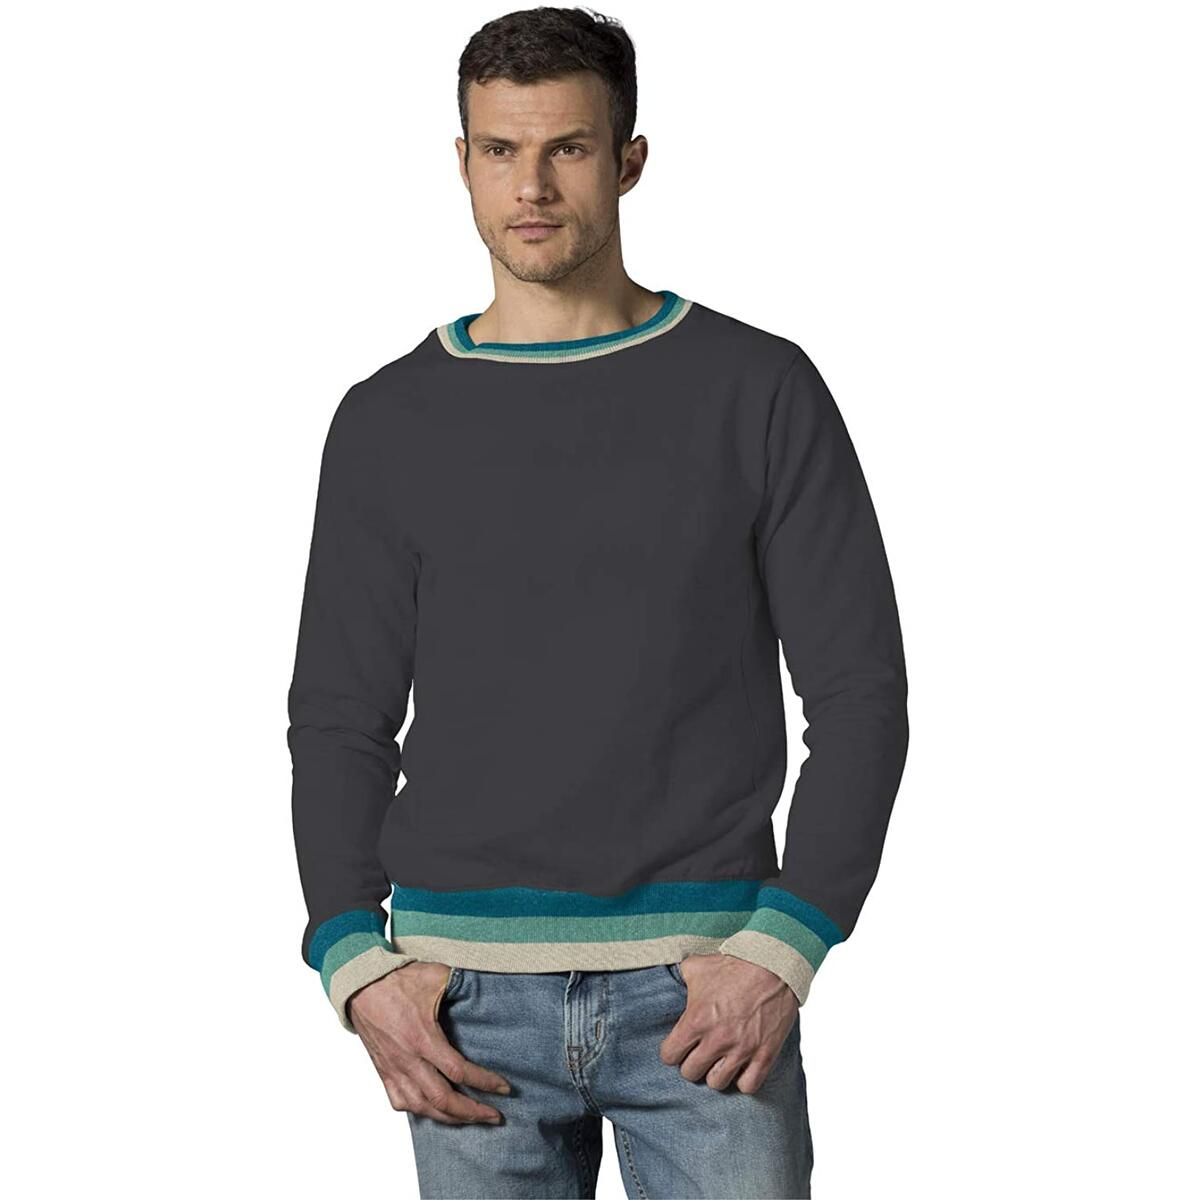 MV Sport Vintage Sweatshirts (Mens Crewneck Sweatshirt) Fleece Retro Sweatshirts - Mens Striped Long Sleeve Pullover